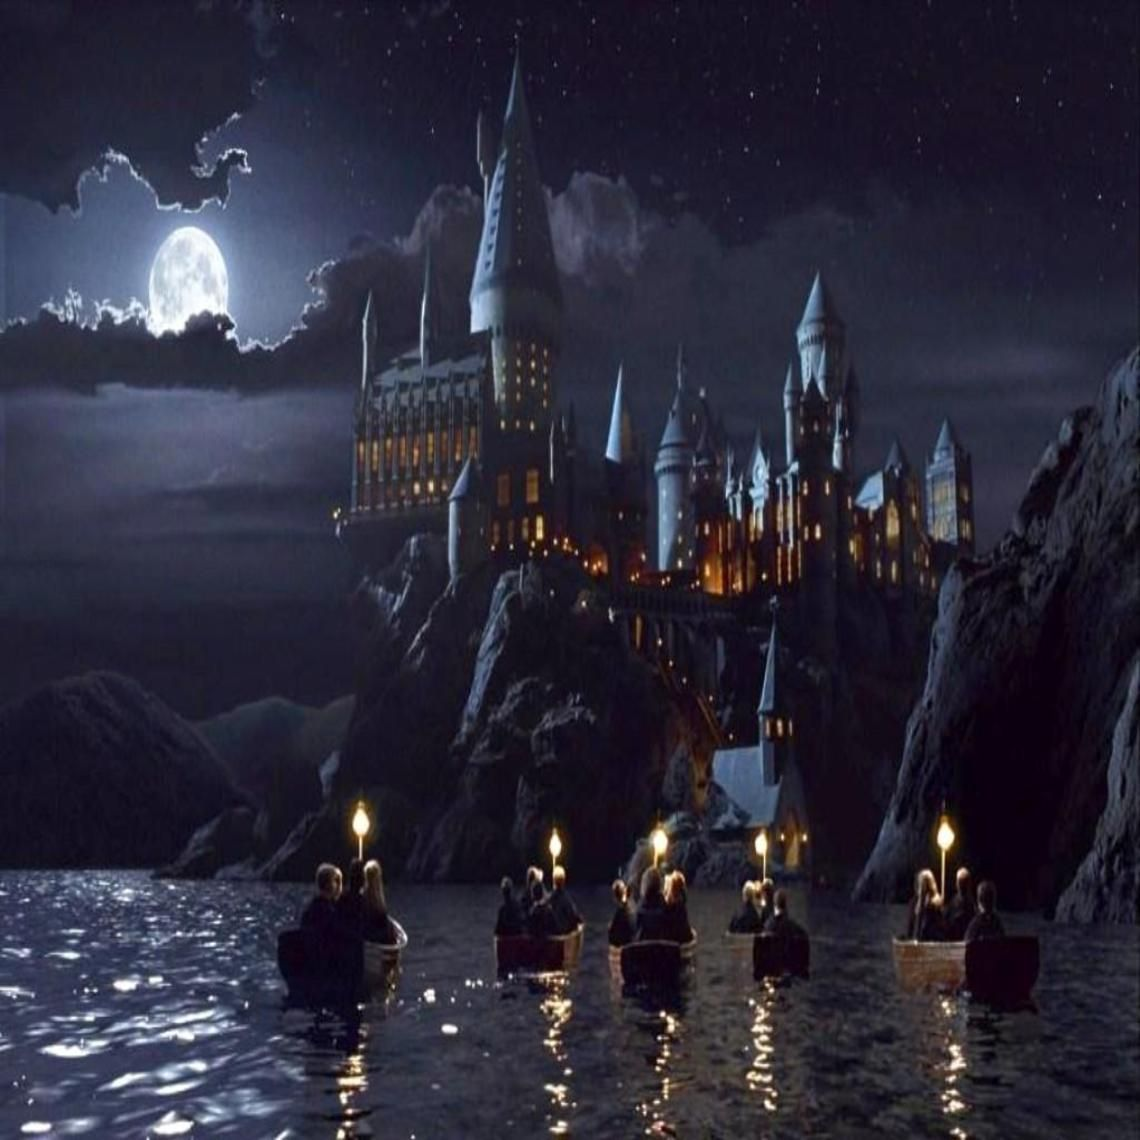 Hogwarts castle phone wallpapers harry potter school - Hogwarts at night wallpaper ...